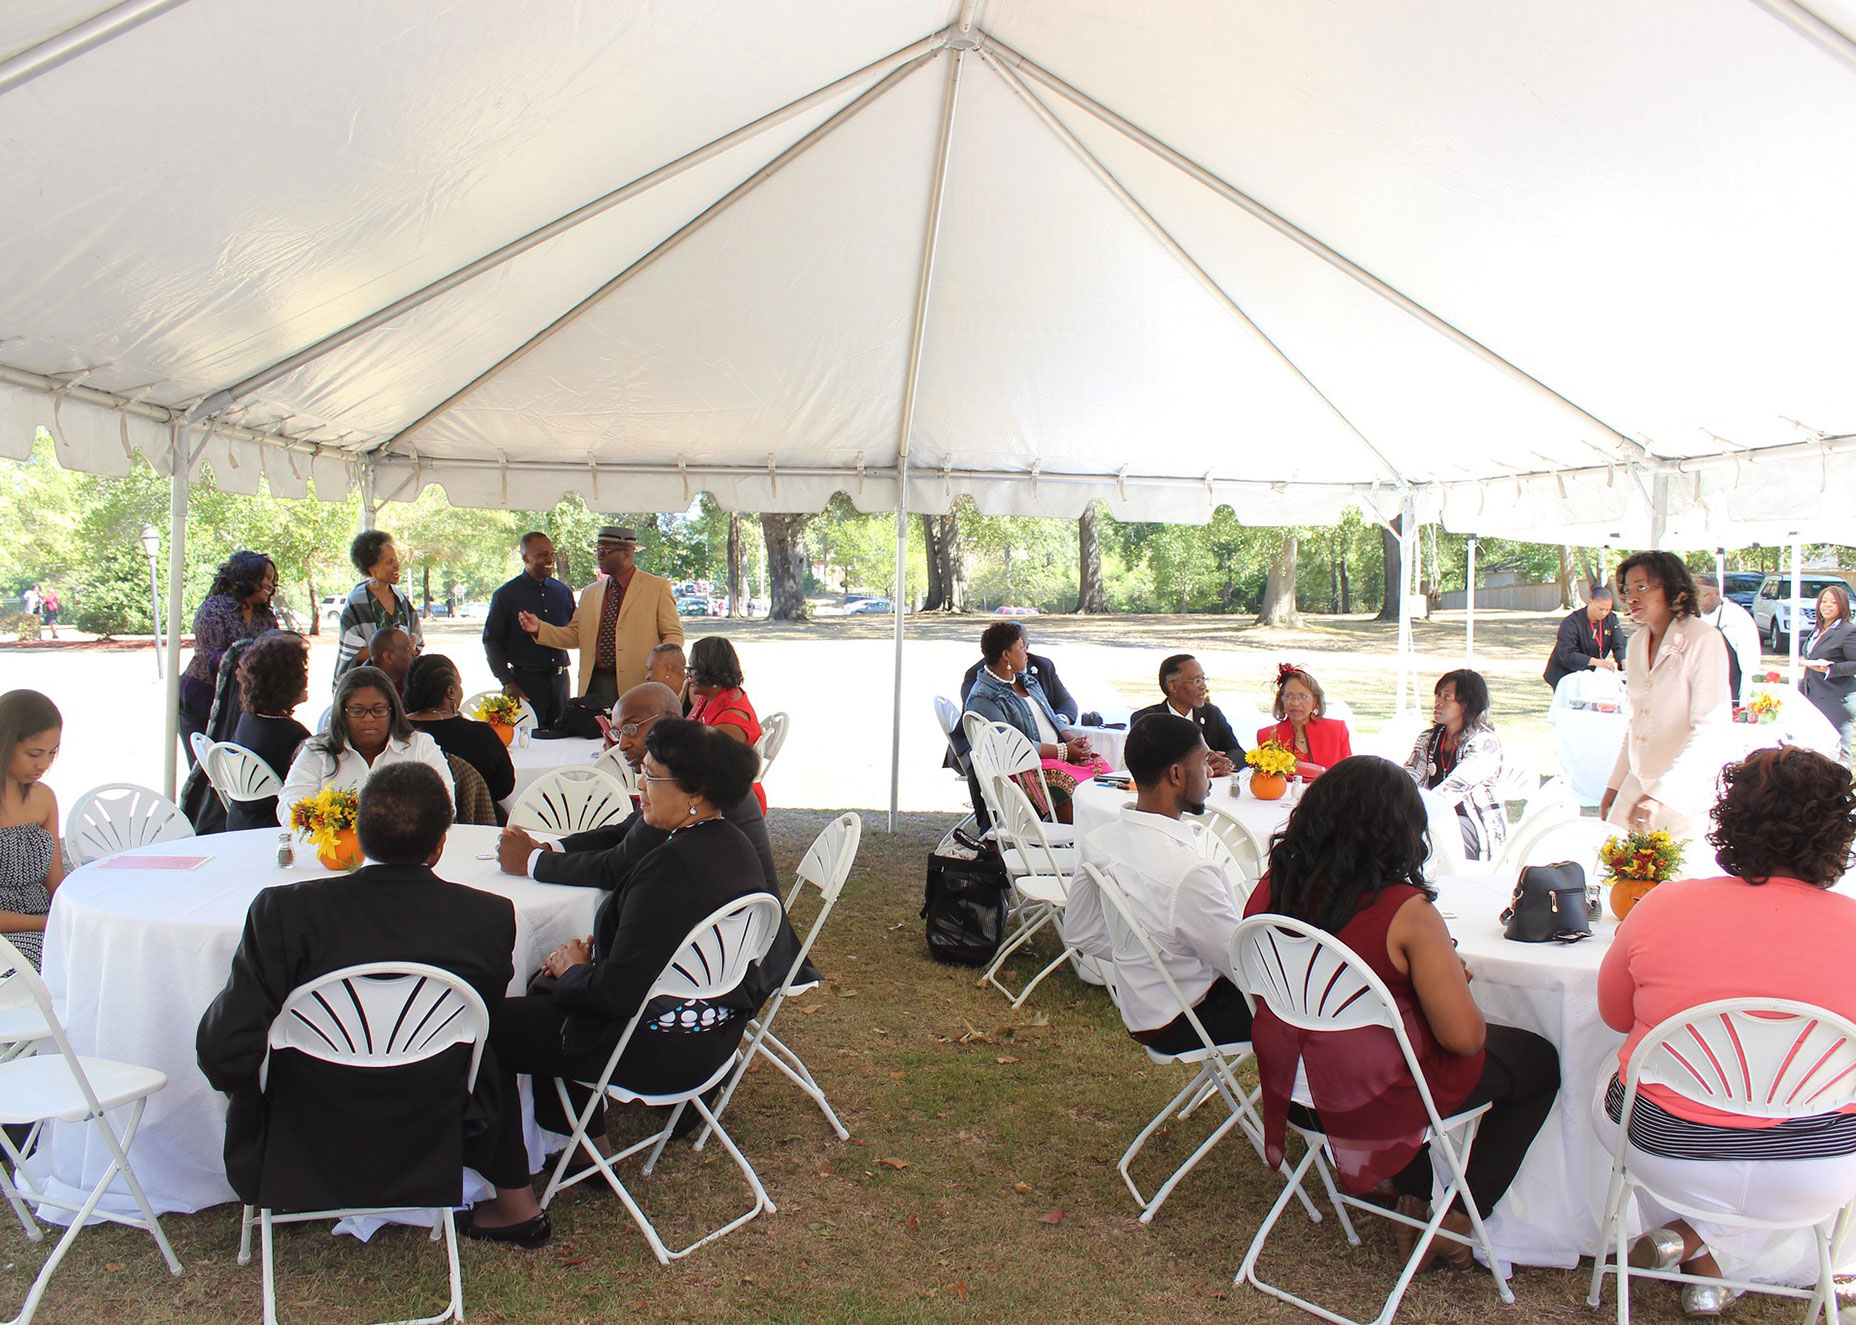 Outdoor under the tent brunch